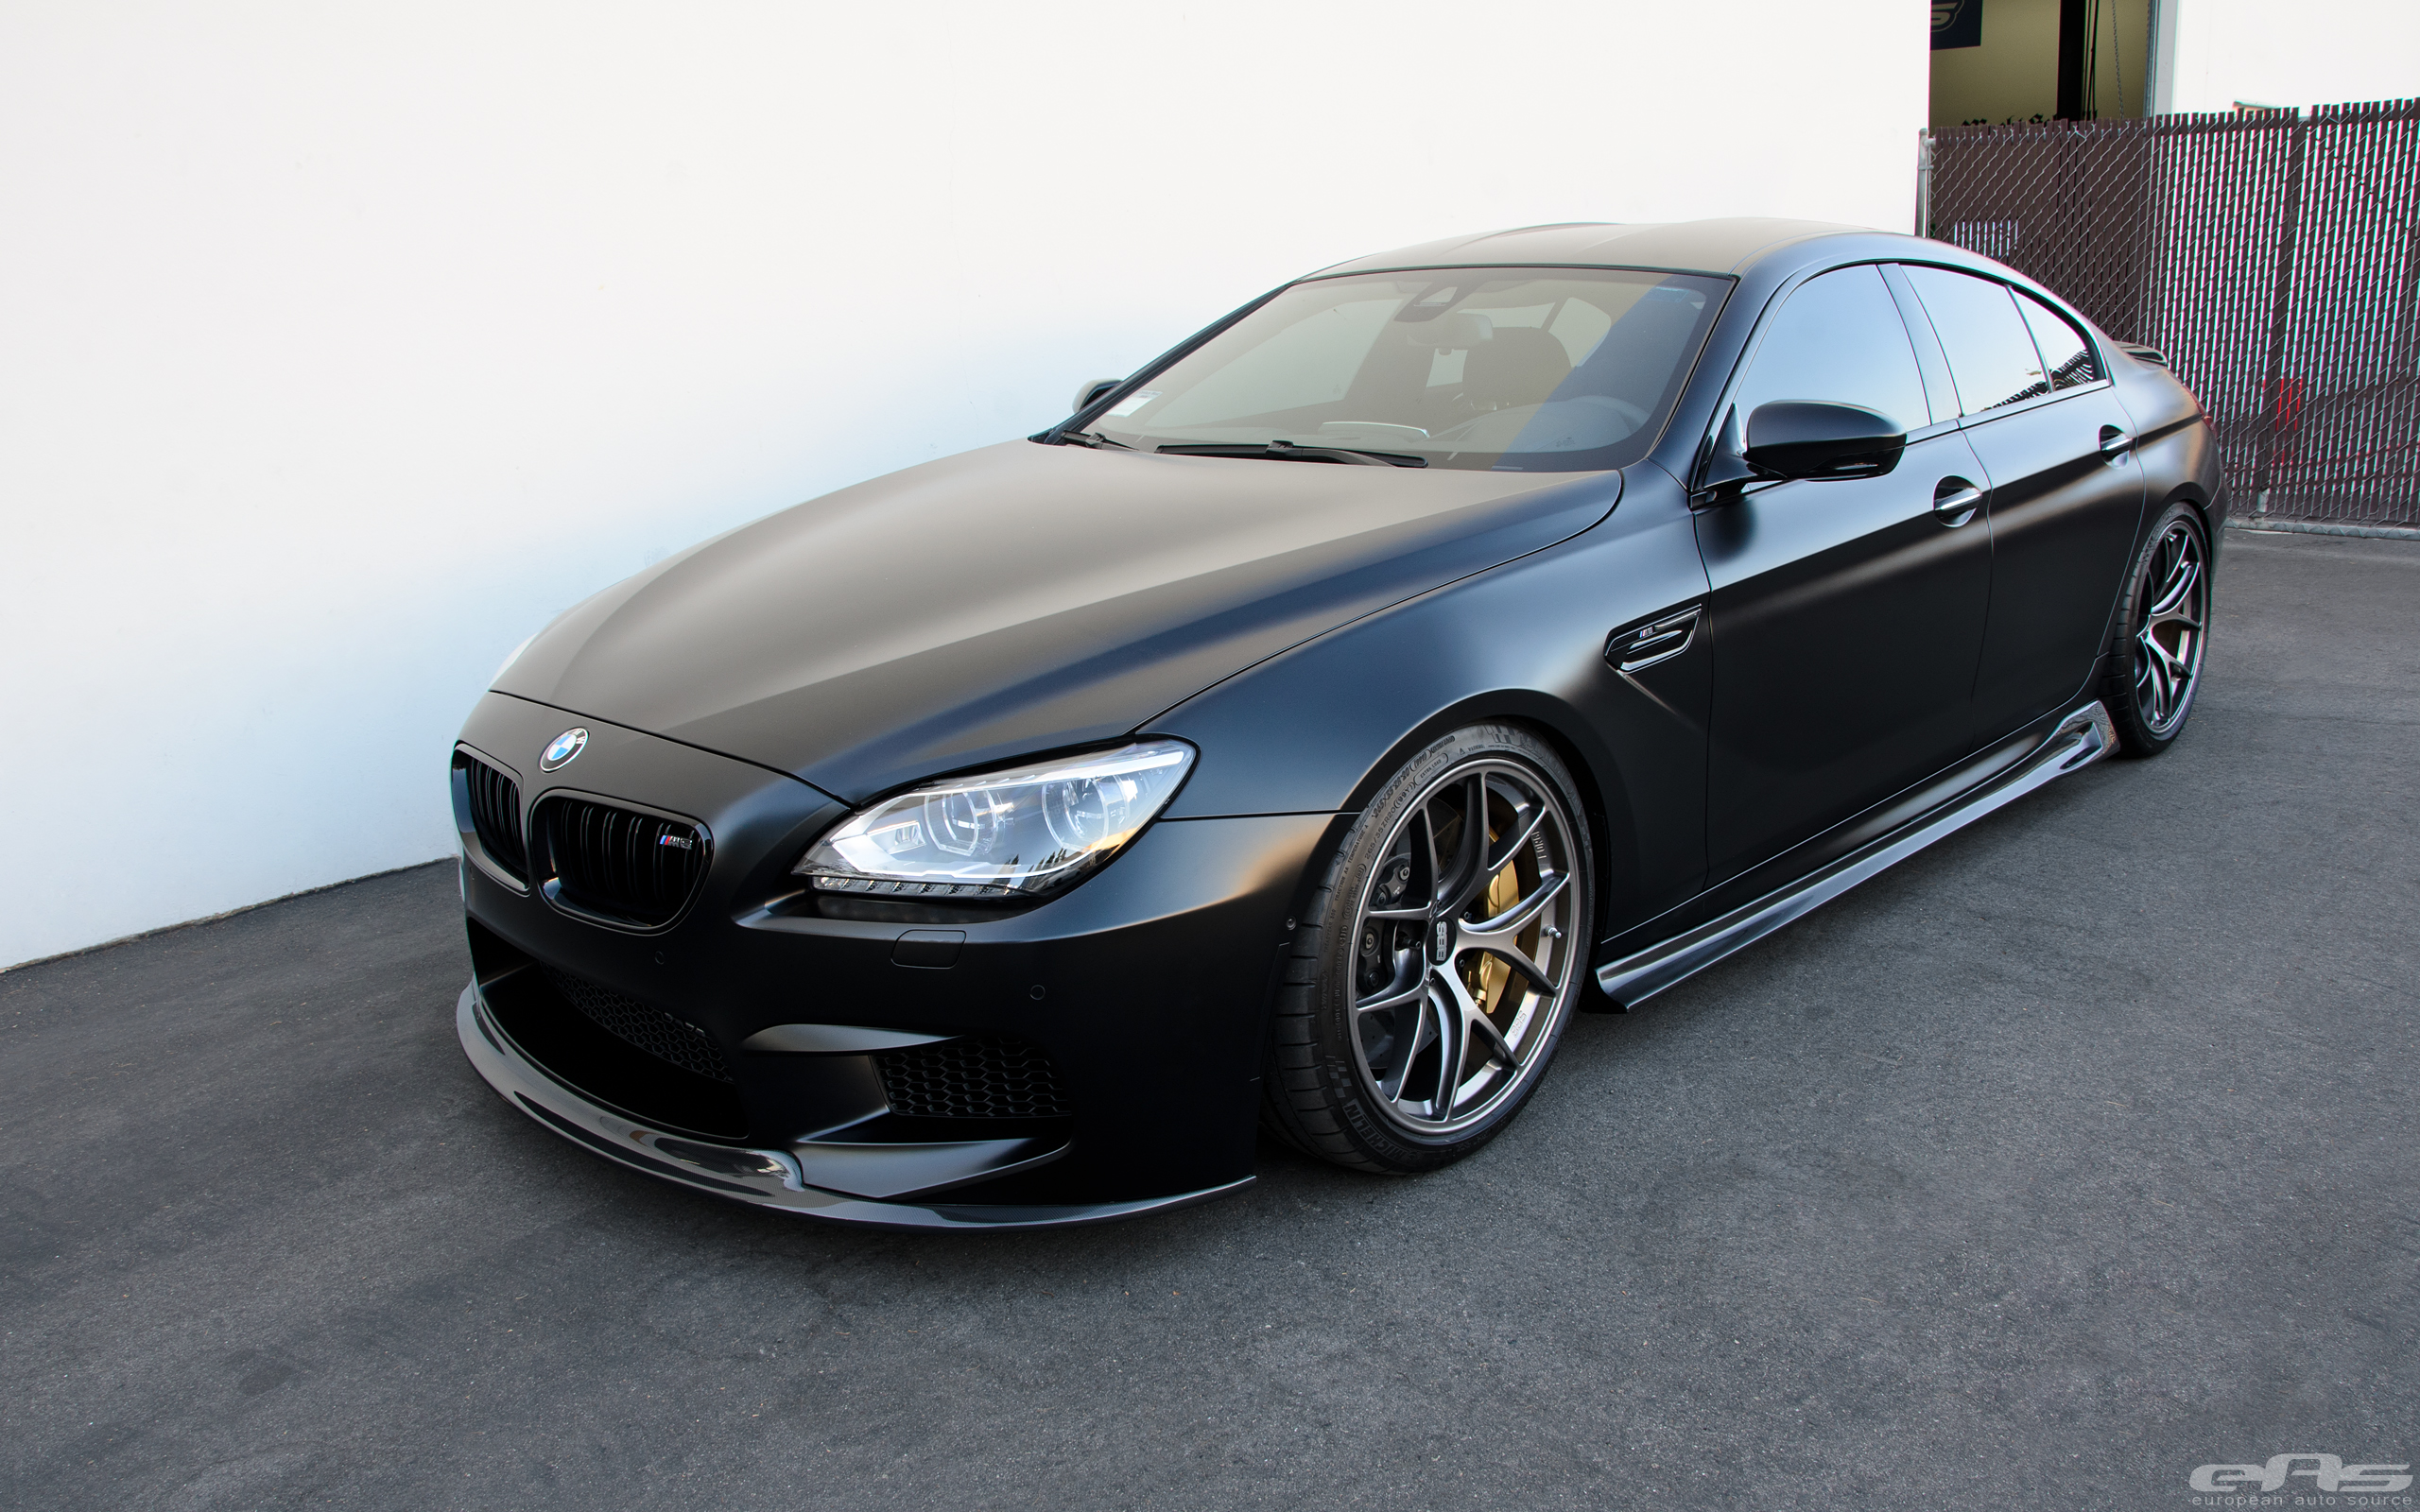 frozen black bmw m6 gran coupe is breathtaking autoevolution. Black Bedroom Furniture Sets. Home Design Ideas